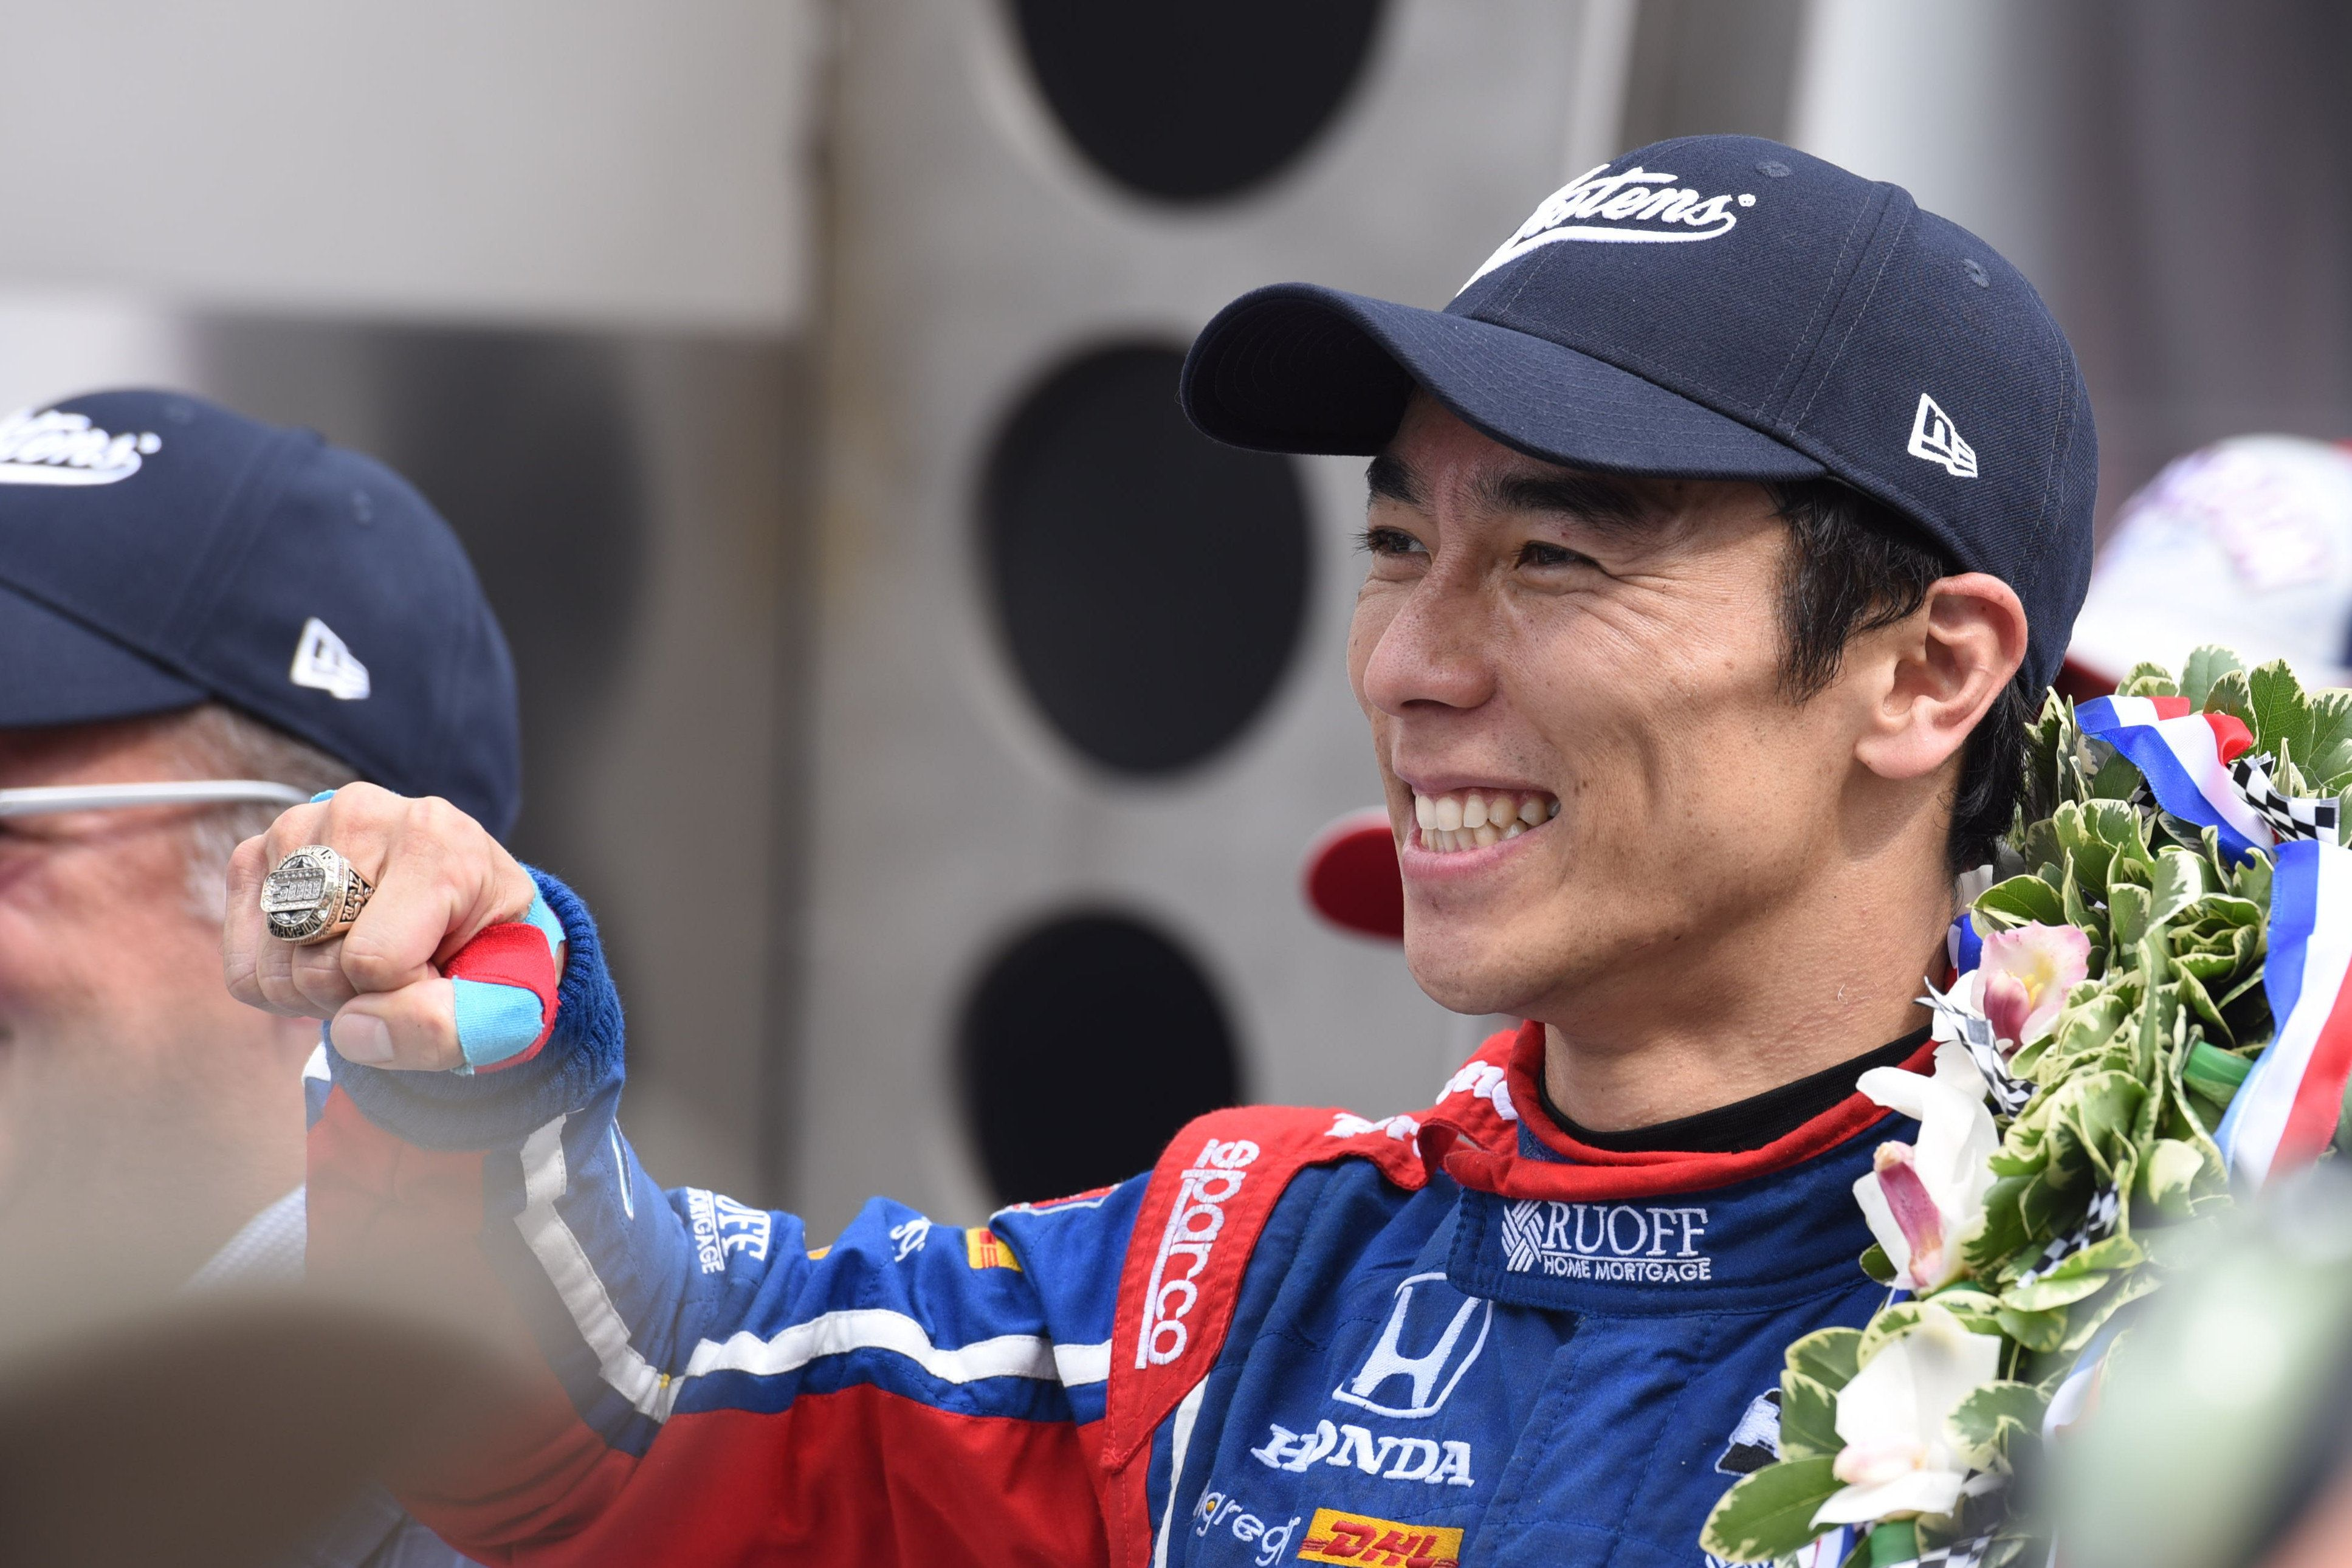 INDIANAPOLIS, IN - MAY 28: Takuma Sato celebrates winning the 101st Indianapolis 500 on May 28, 2017, at the Indianapolis Motor Speedway in Indianapolis, Indiana. (Photo by James Black/Icon Sportswire via Getty Images)